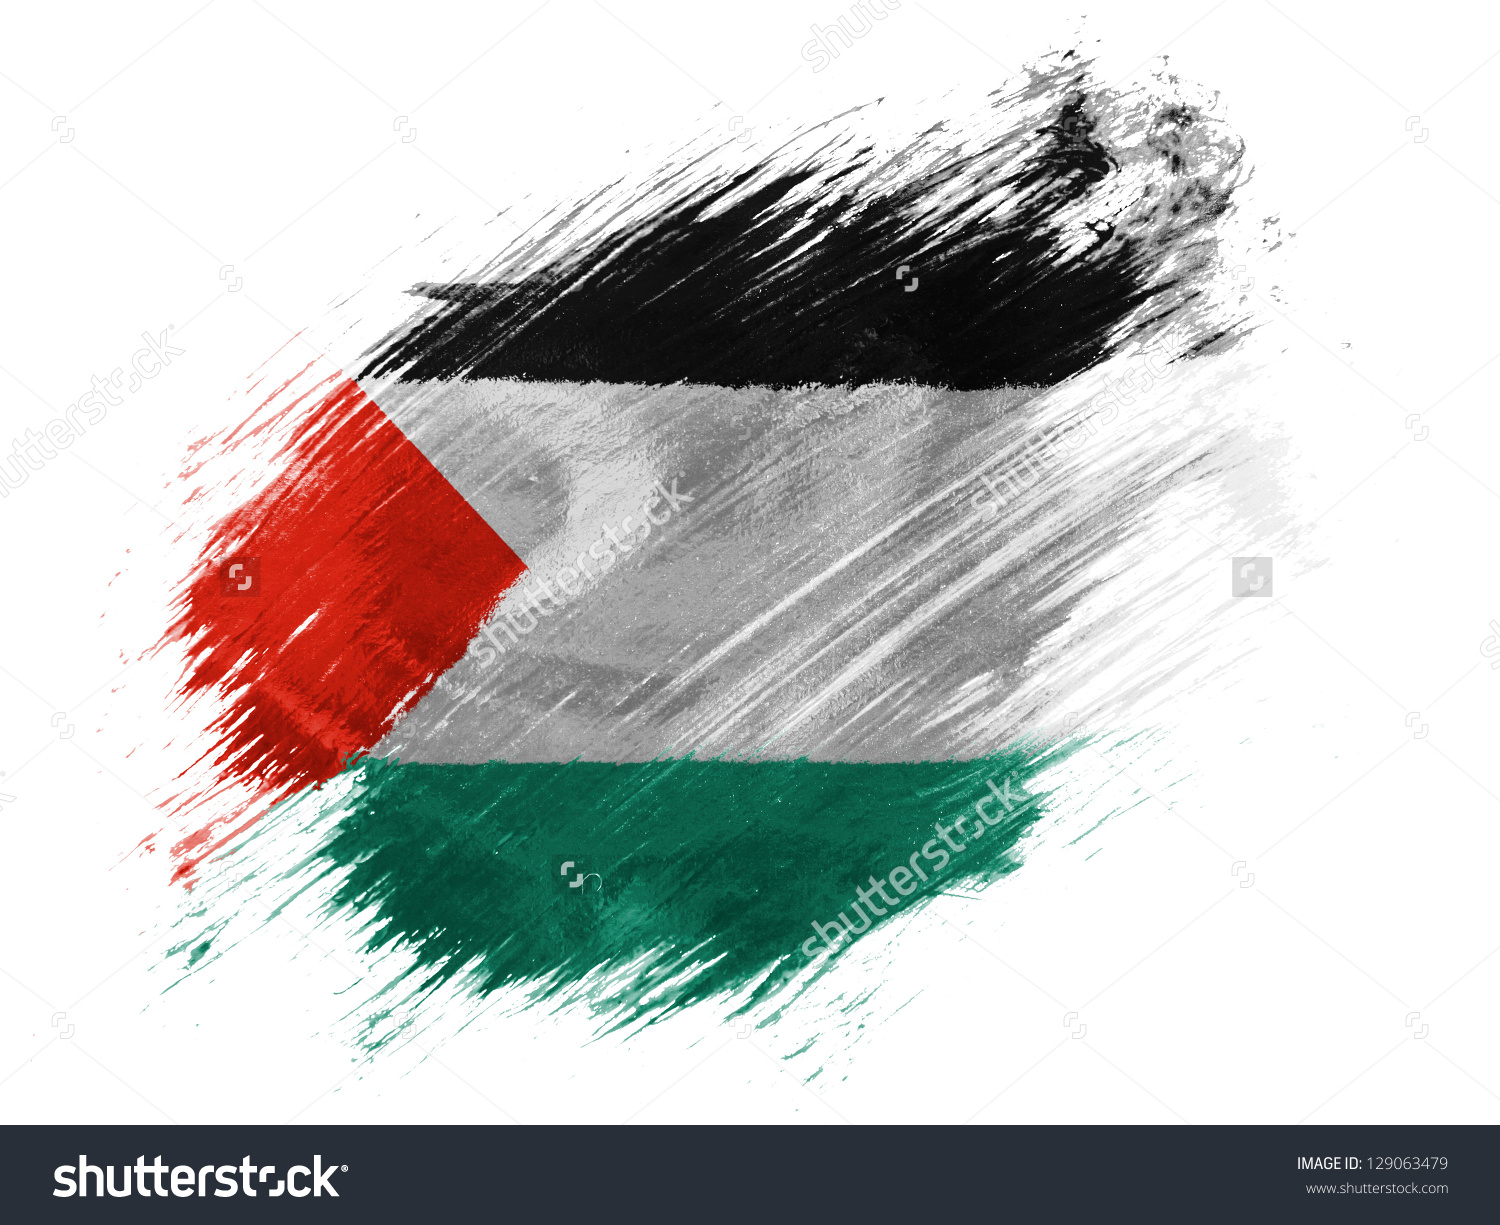 should palestine be an independent nation Palestine is a name the romans gave to eretz yisrael with the express purpose of infuriating the jews     why should we use the spiteful name meant to humiliate us the british chose to call the land they mandated palestine, and the arabs picked it up as their nation's supposed ancient name, though they couldn't even pronounce it correctly .